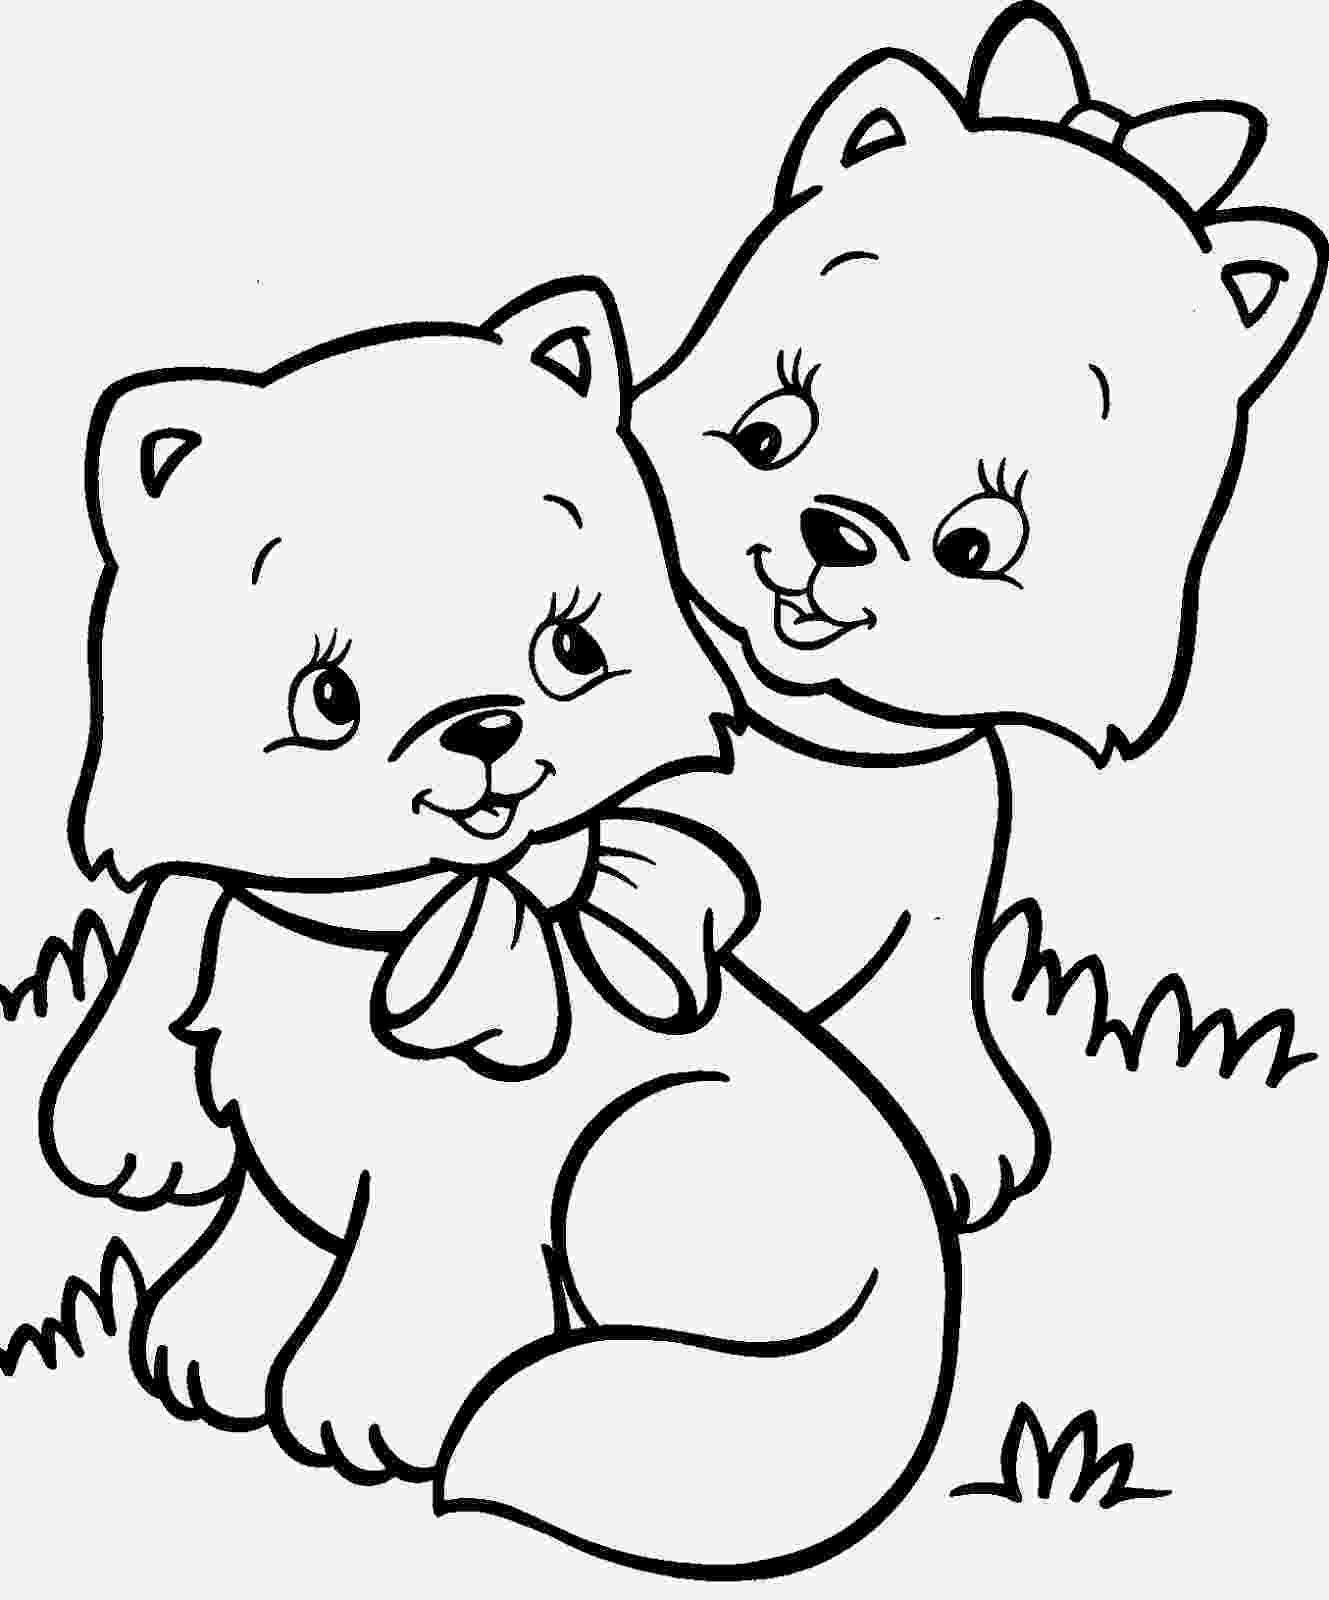 dog images to color navishta sketch sweet cute angle cats to color images dog